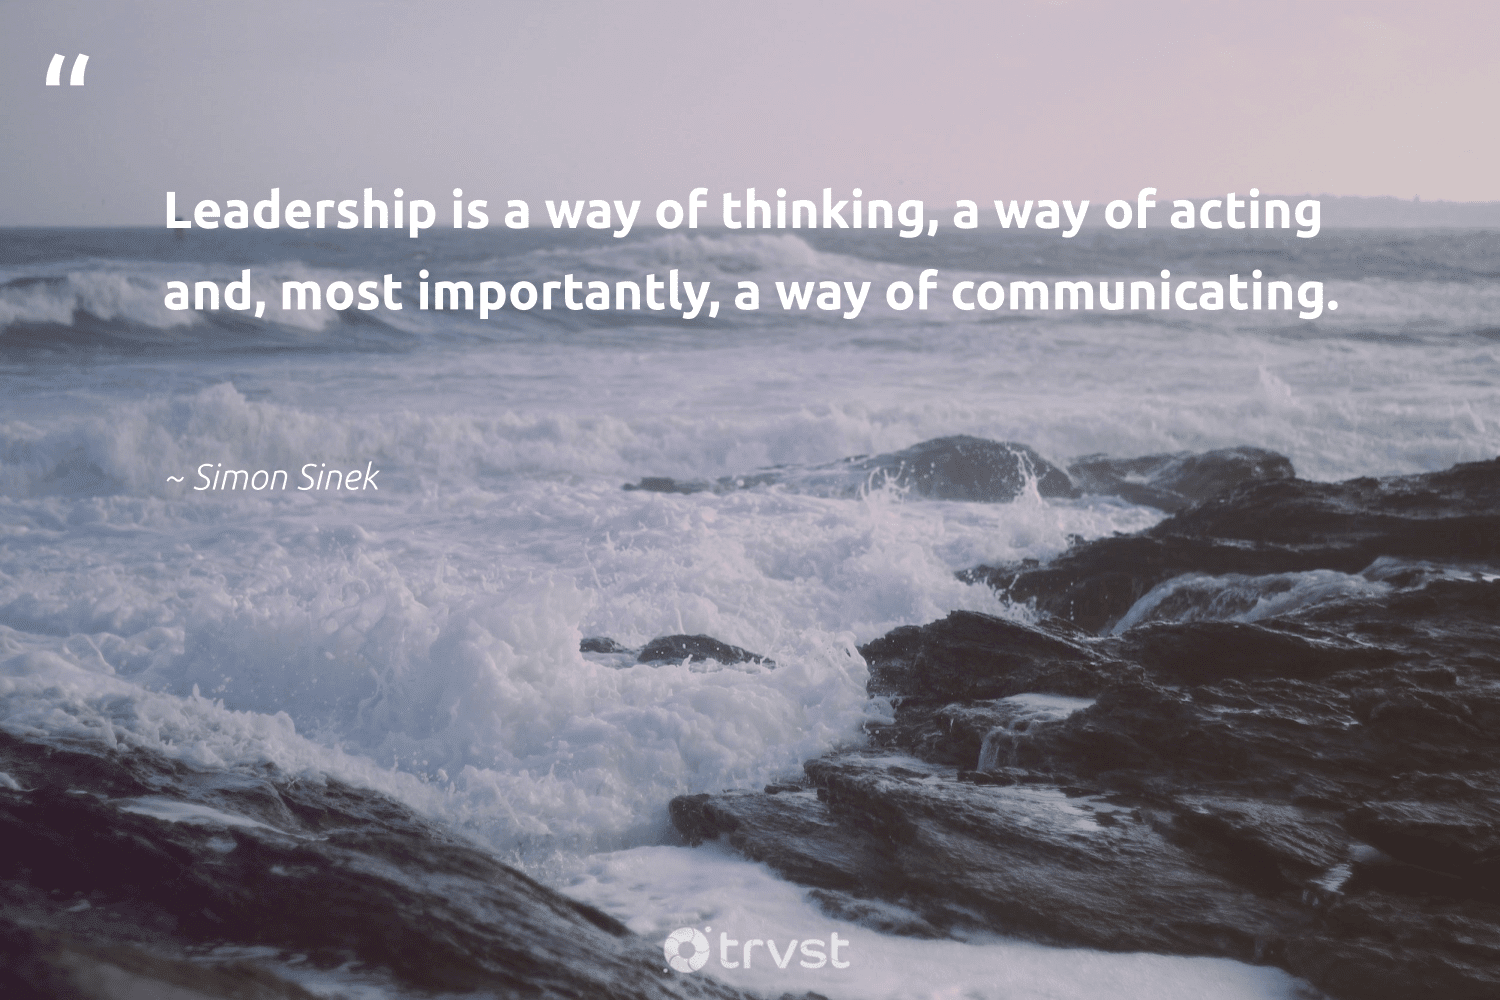 """""""Leadership is a way of thinking, a way of acting and, most importantly, a way of communicating.""""  - Simon Sinek #trvst #quotes #leadership #leadershipdevelopment #begreat #nevergiveup #dotherightthing #leadershipskills #softskills #futureofwork #beinspired #leadershipqualities"""